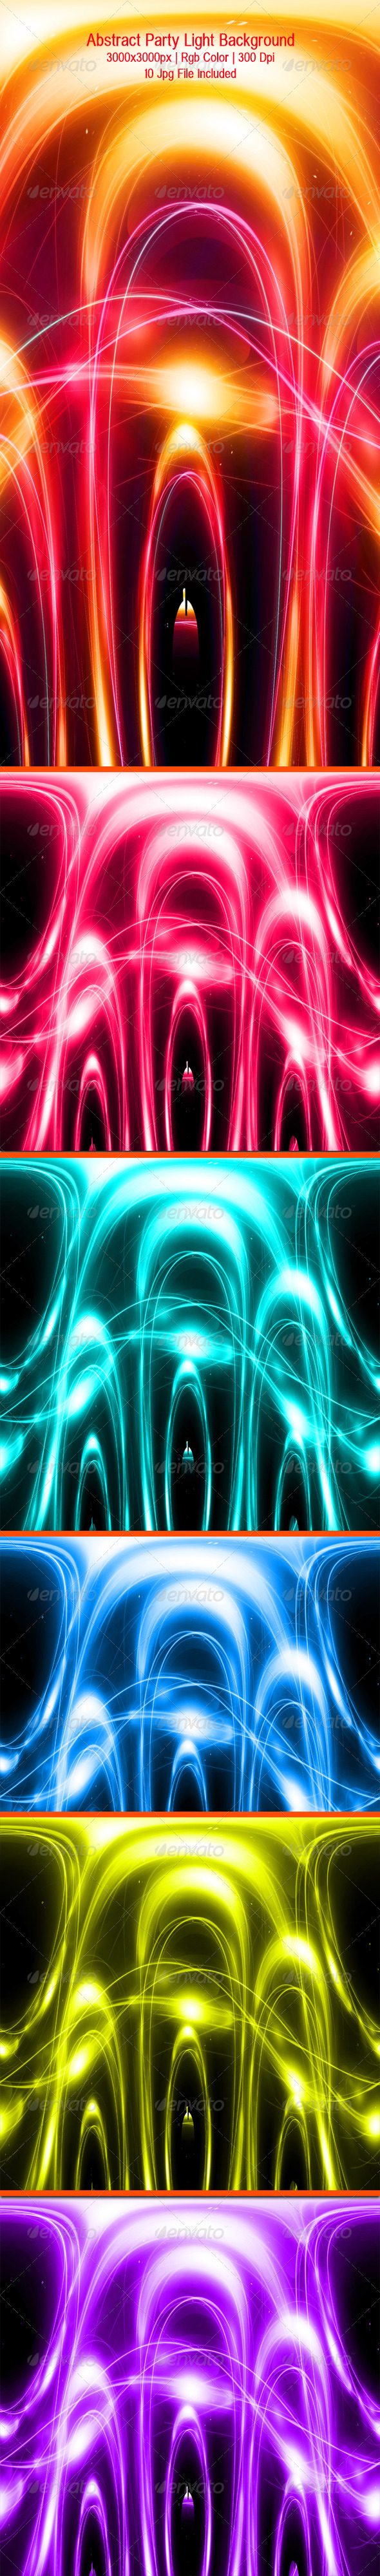 Abstract Party Light Background - Abstract Backgrounds